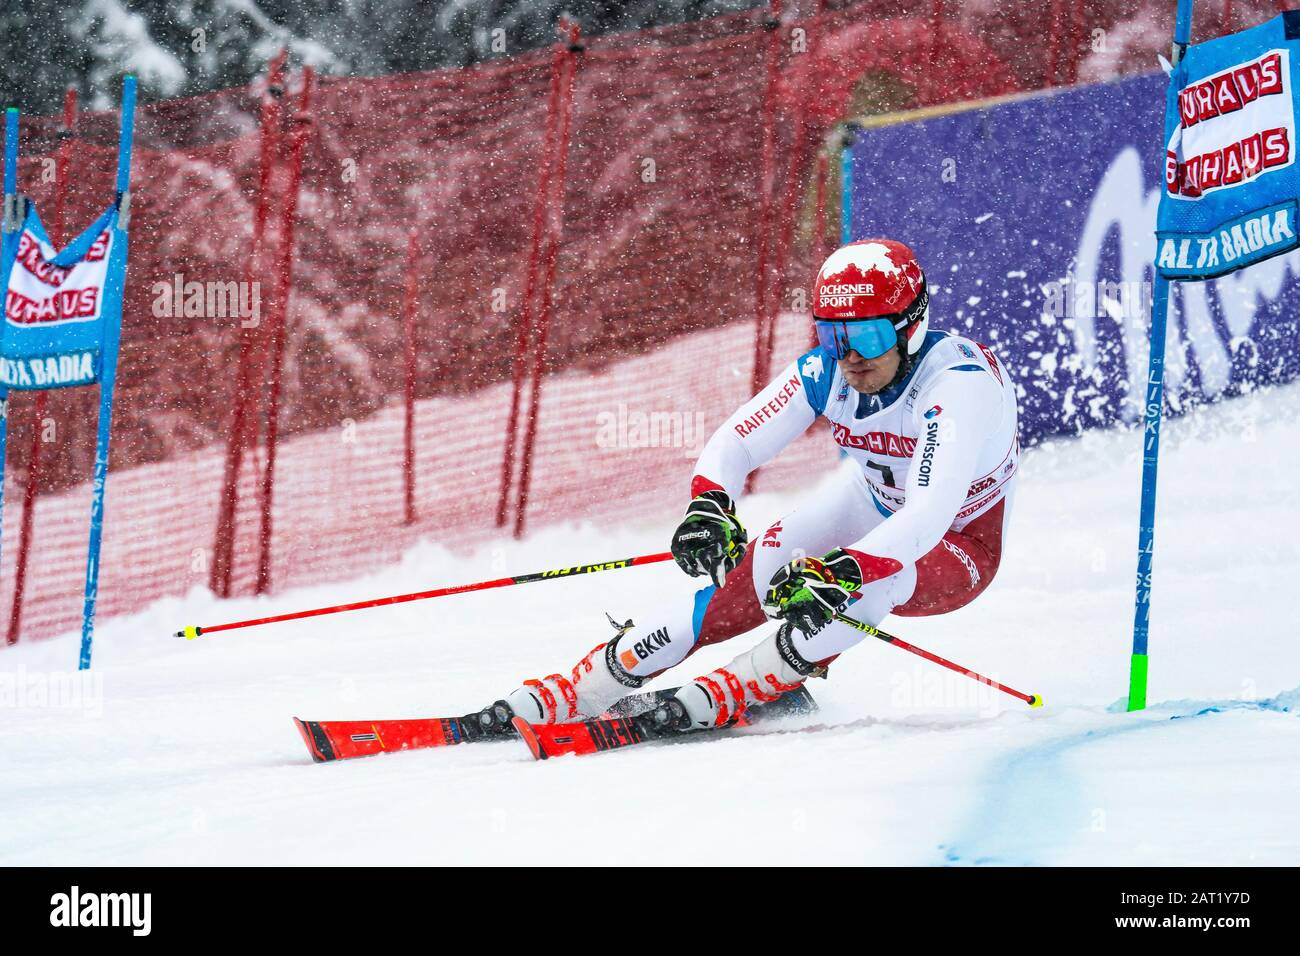 Alta Badia, Italy 22 December 2019.  MEILLARD Loic (Sui) competing in the Audi Fis Alpine Skiing World Cup Men's Giant Slalom on the Gran Risa Course Stock Photo